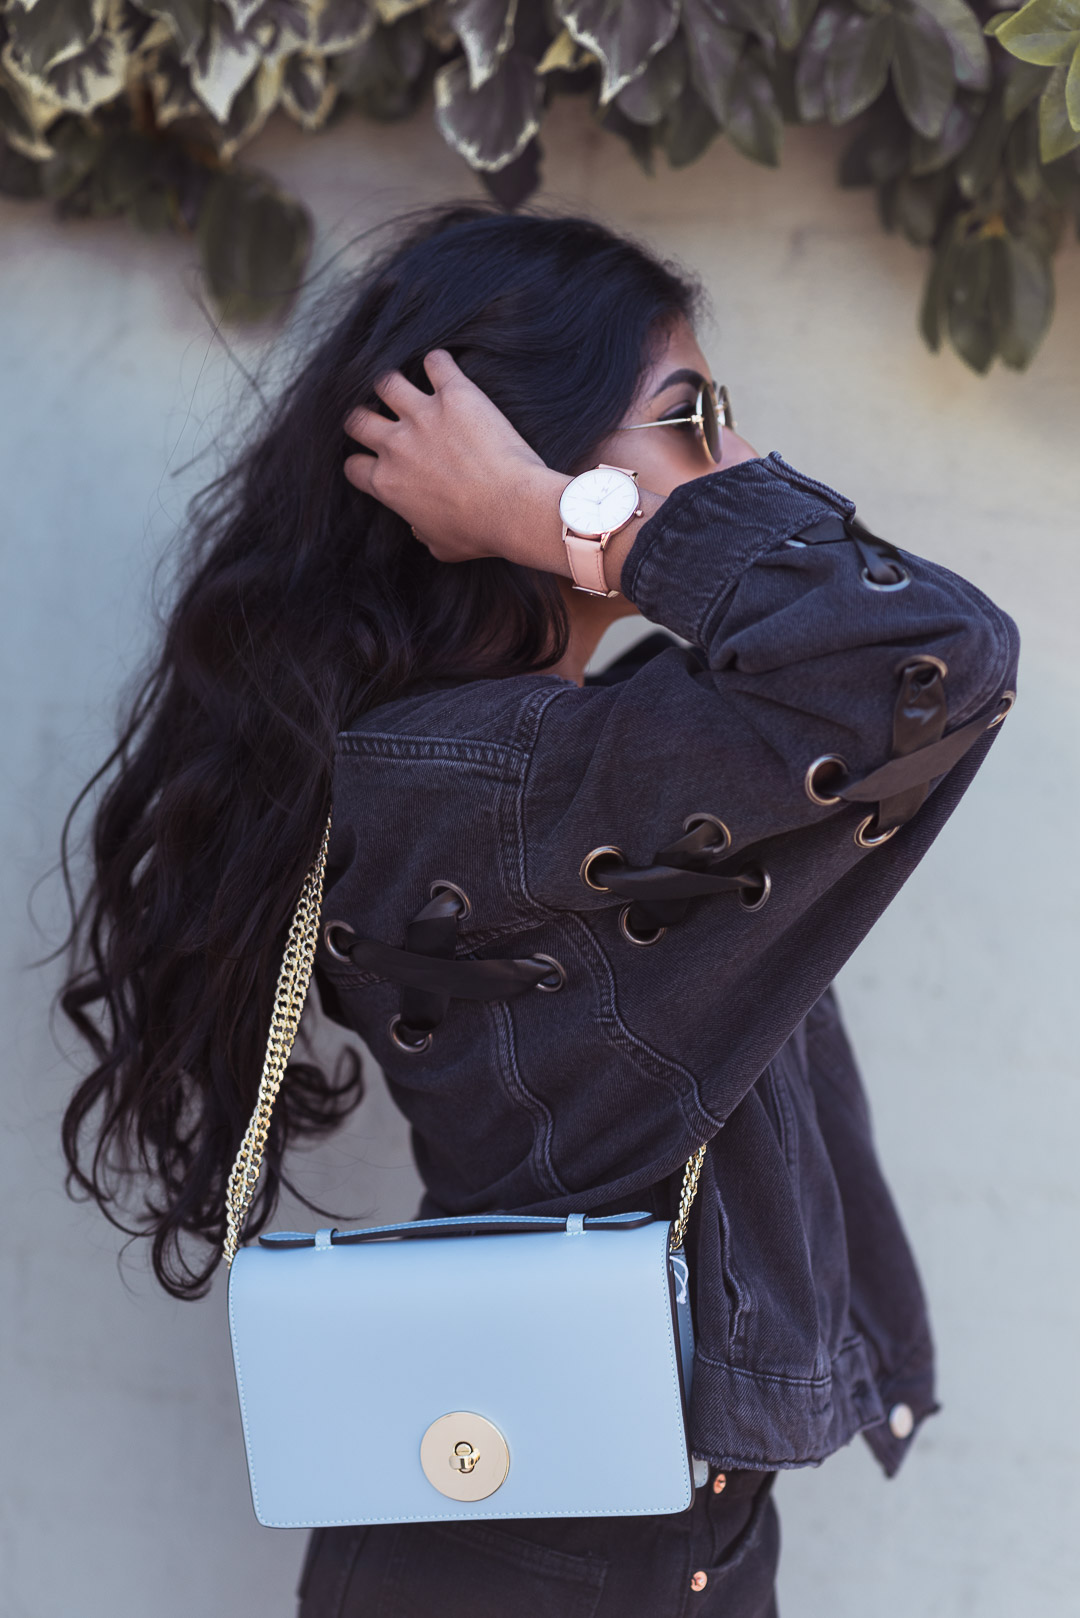 Black Denim Jacket Outfit Close Up